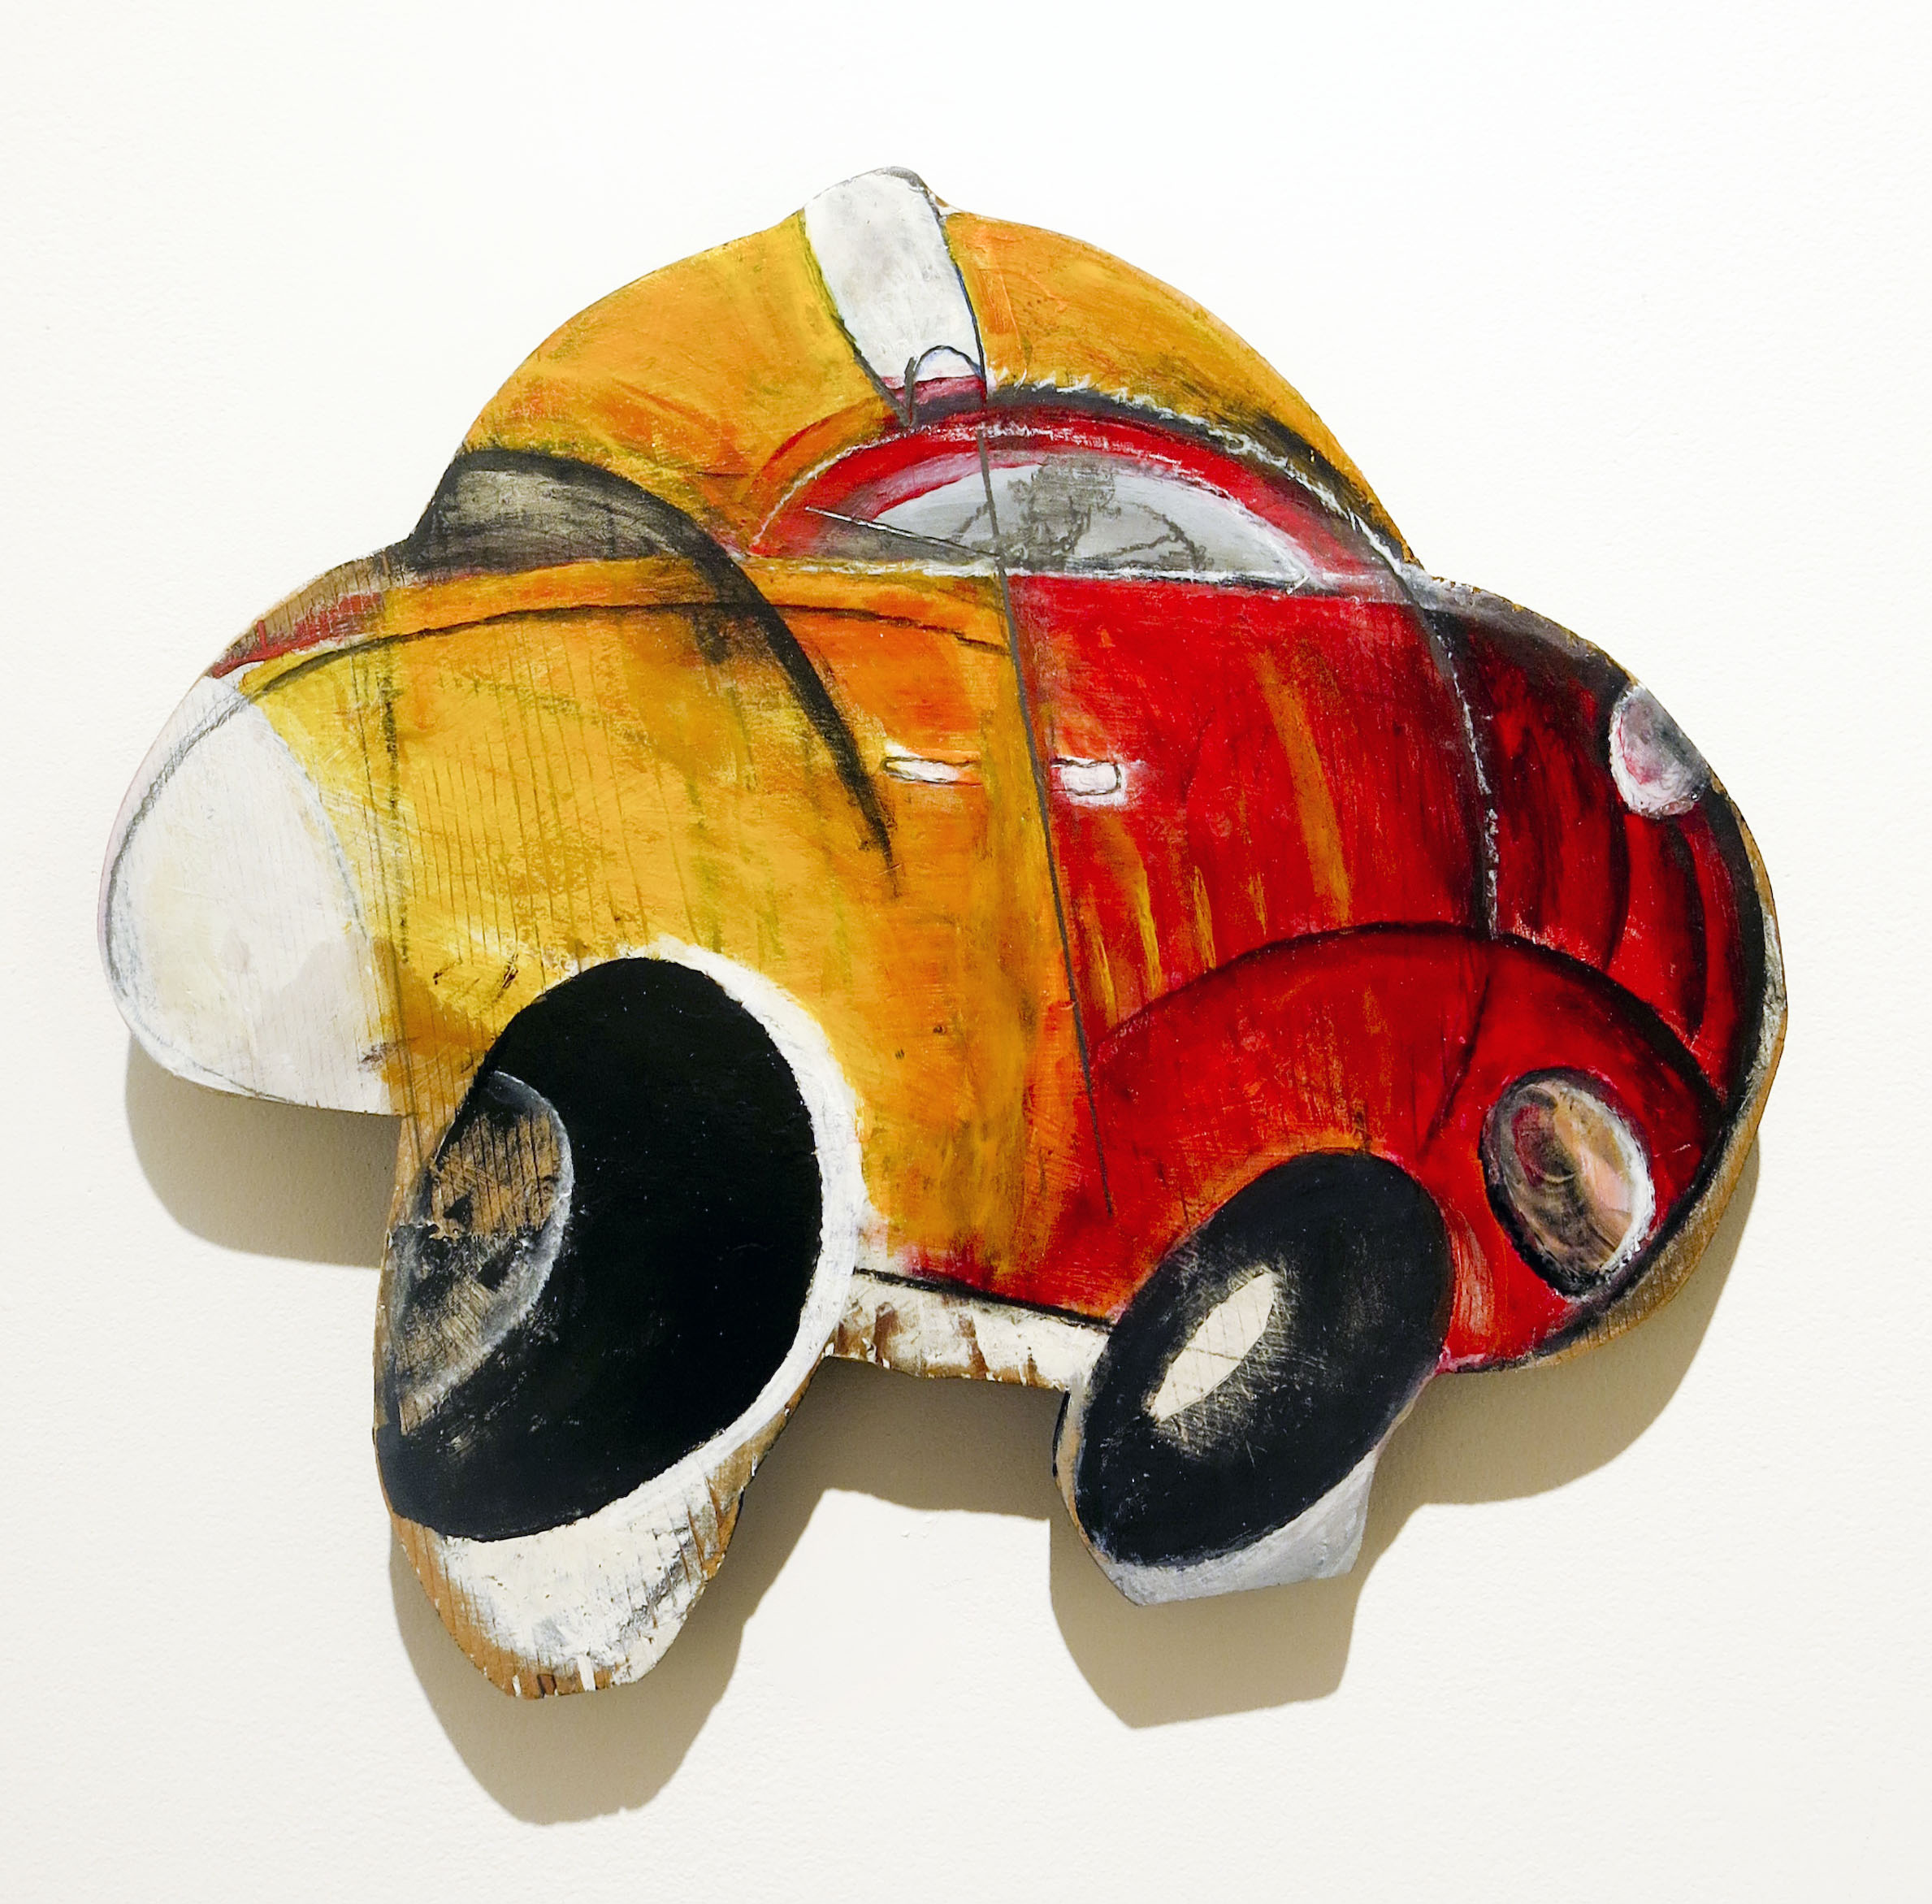 Jenny Snider,  Big Cab , 2001-2002, Painted wood, 15h x 17.5w x 1d in.